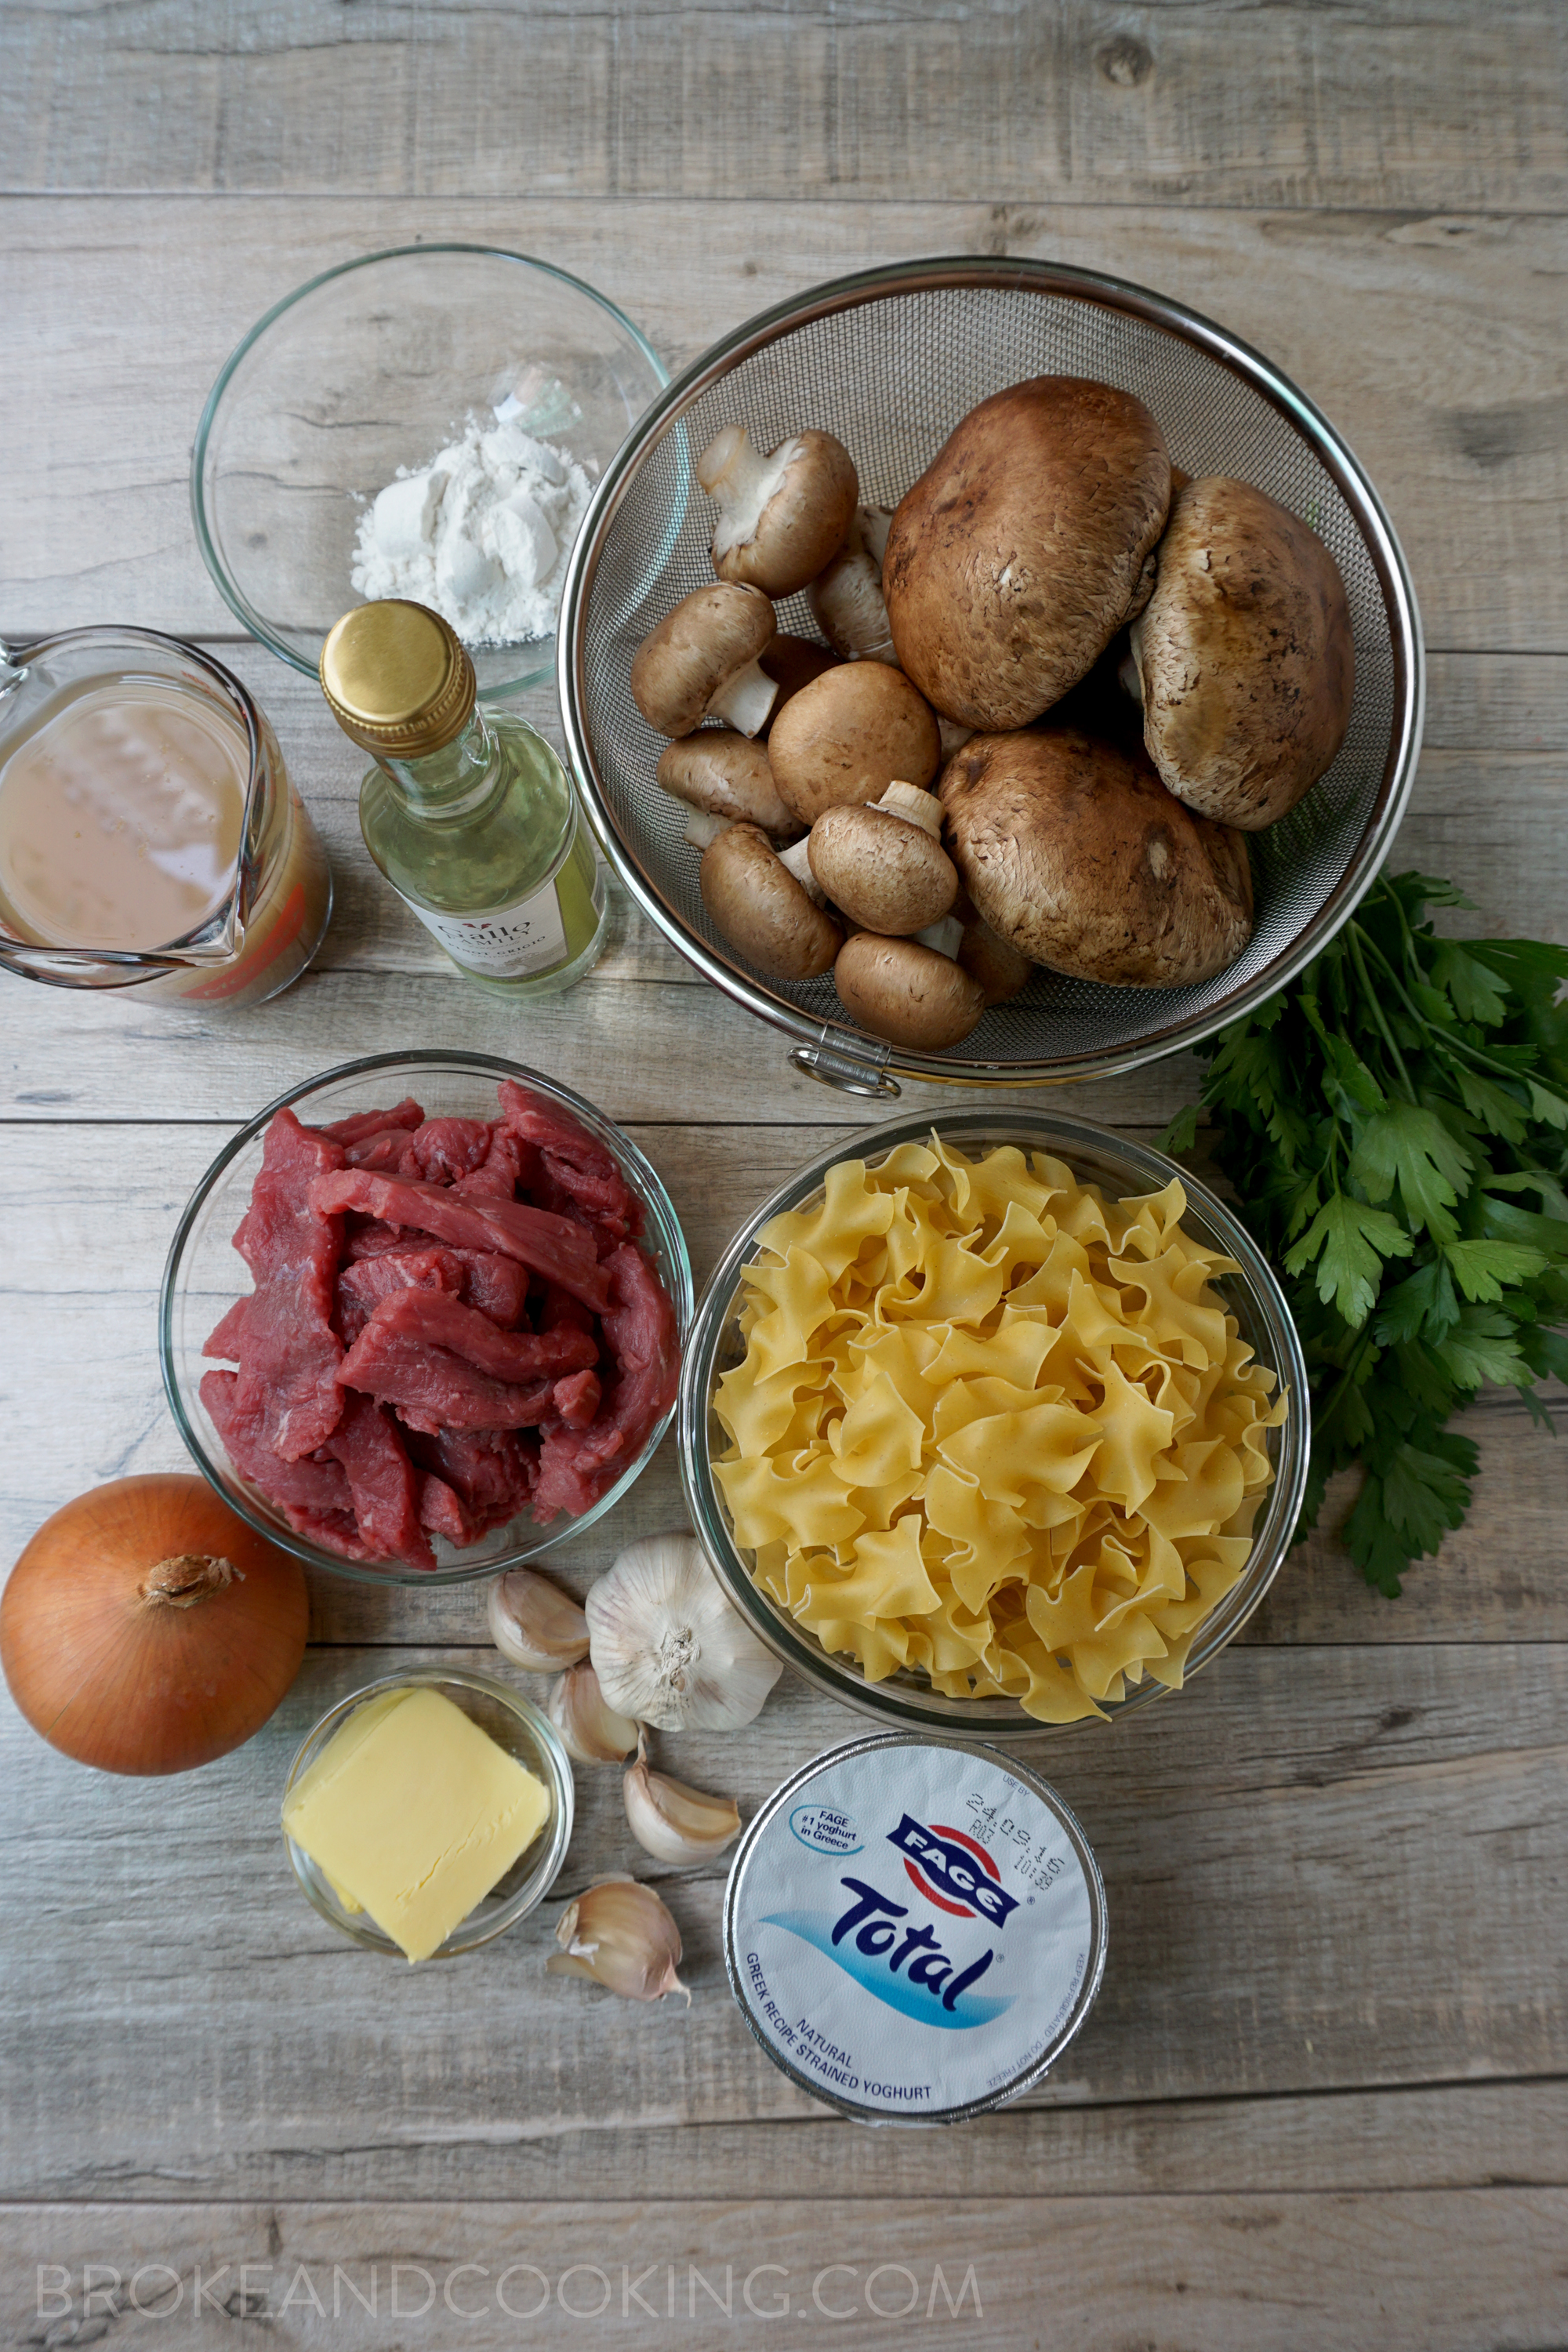 Ingredients for a lightened up version of the classic Beef Stroganoff